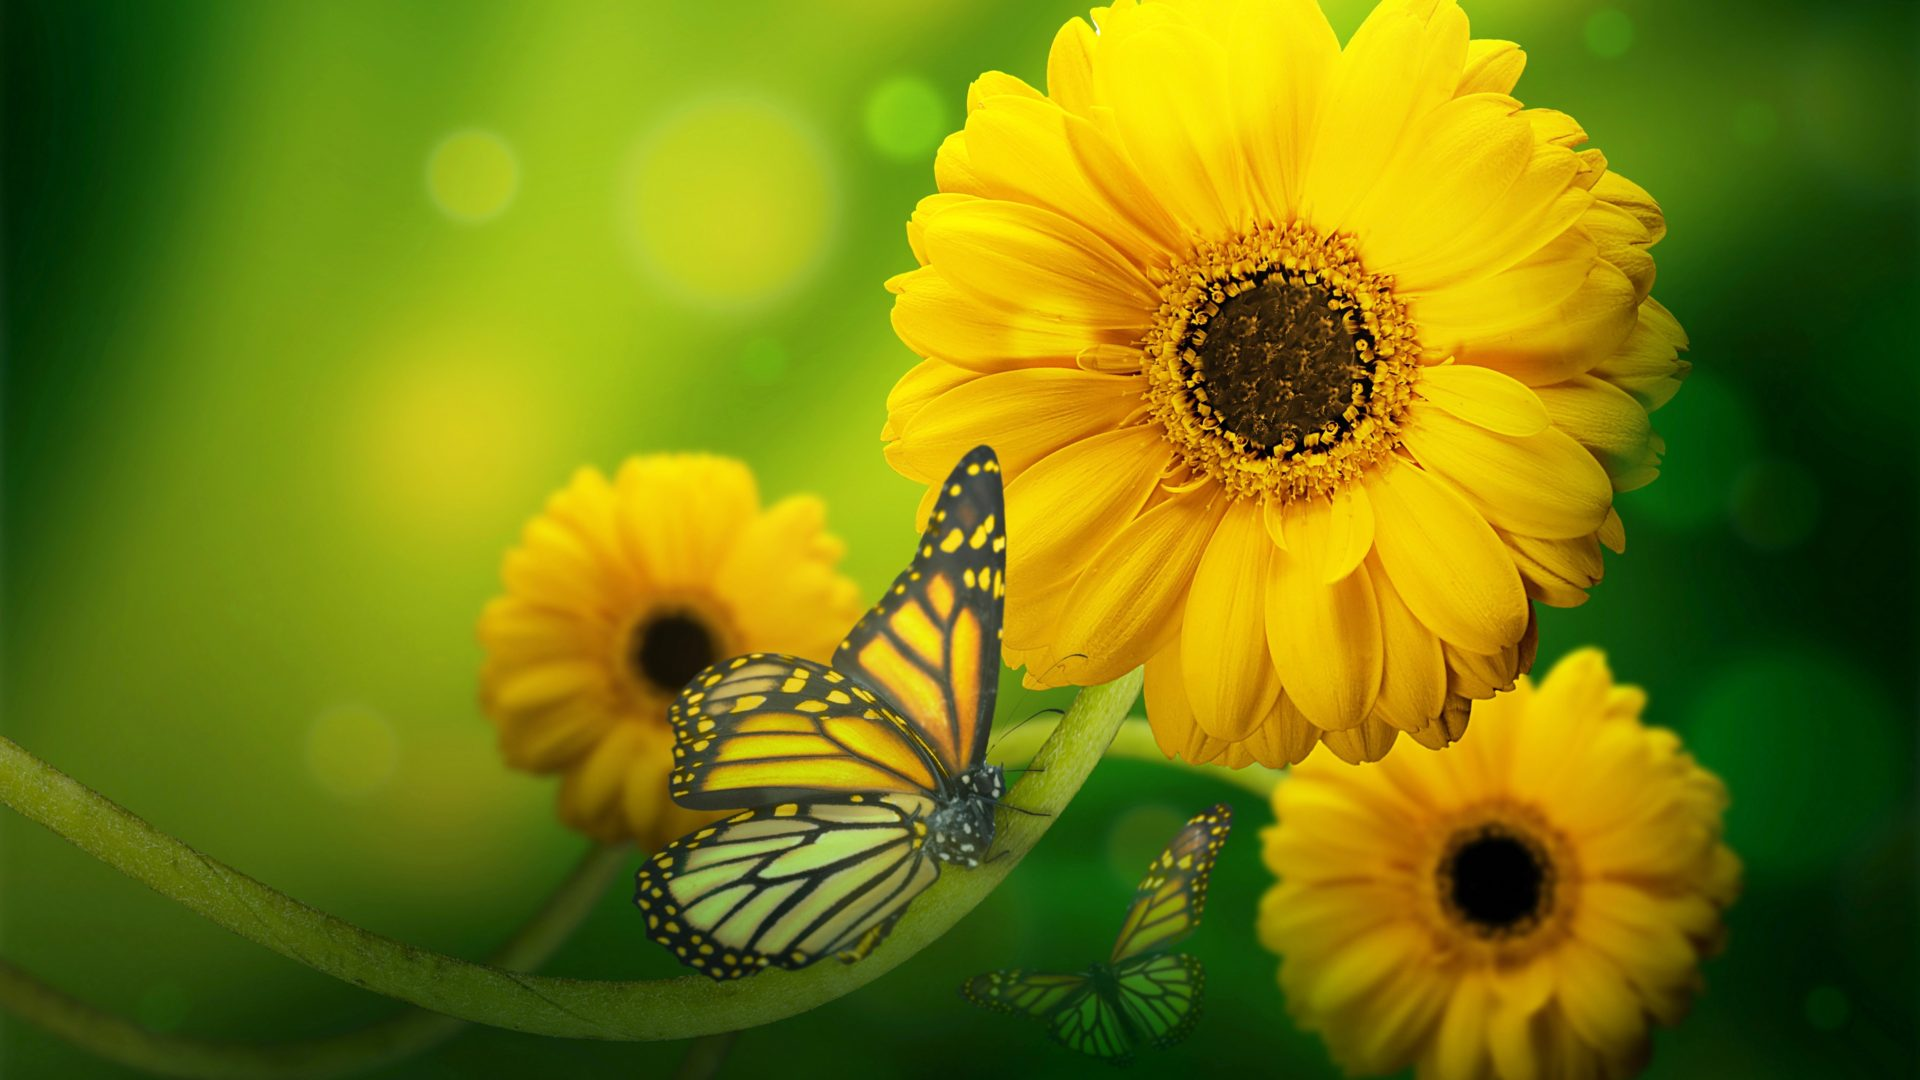 Fall Computer Screen Wallpaper Butterfly On Yellow Flowers Hd Wallpaper Download For